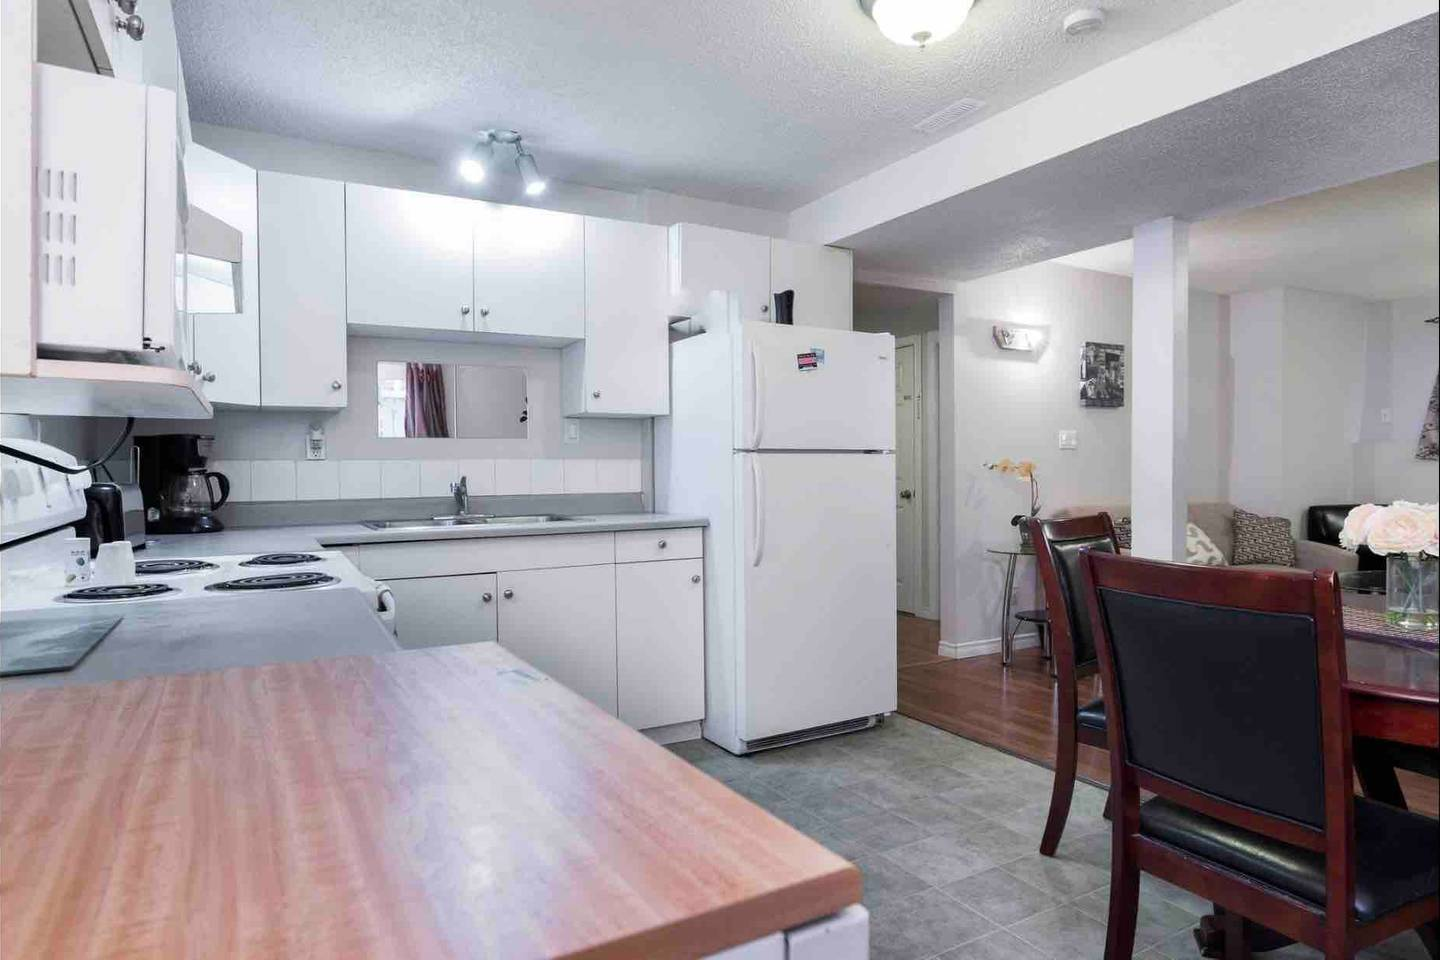 Apartment 2 BEDROOM BASEMENT SUITE  WALK TO WEST ED   MORE  photo 18724752